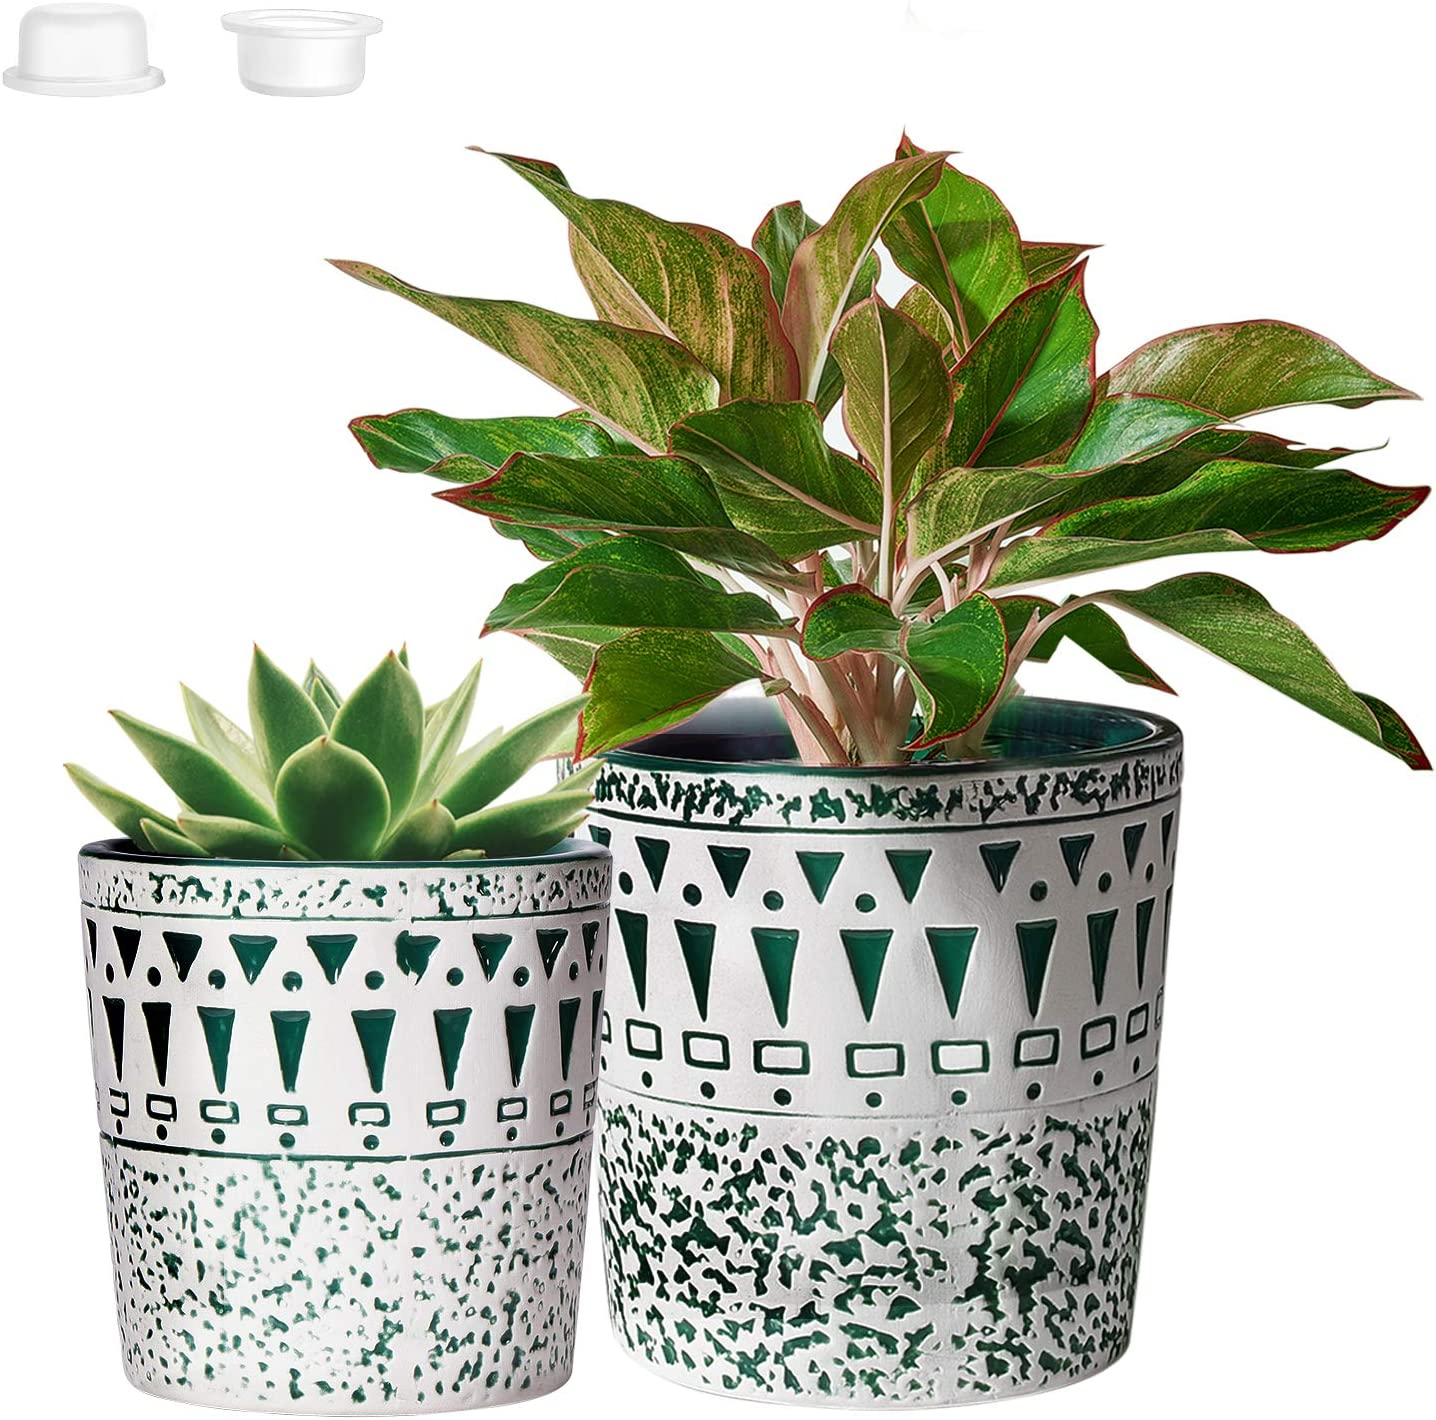 CeramicPlant Pots Garden Planters for Plants with Drainage Hole Flower potsIndoor Outdoor 4.9in+5.9in PARTNERO NordicModernWhite & GreenPack of 2 (Plant Not Included)